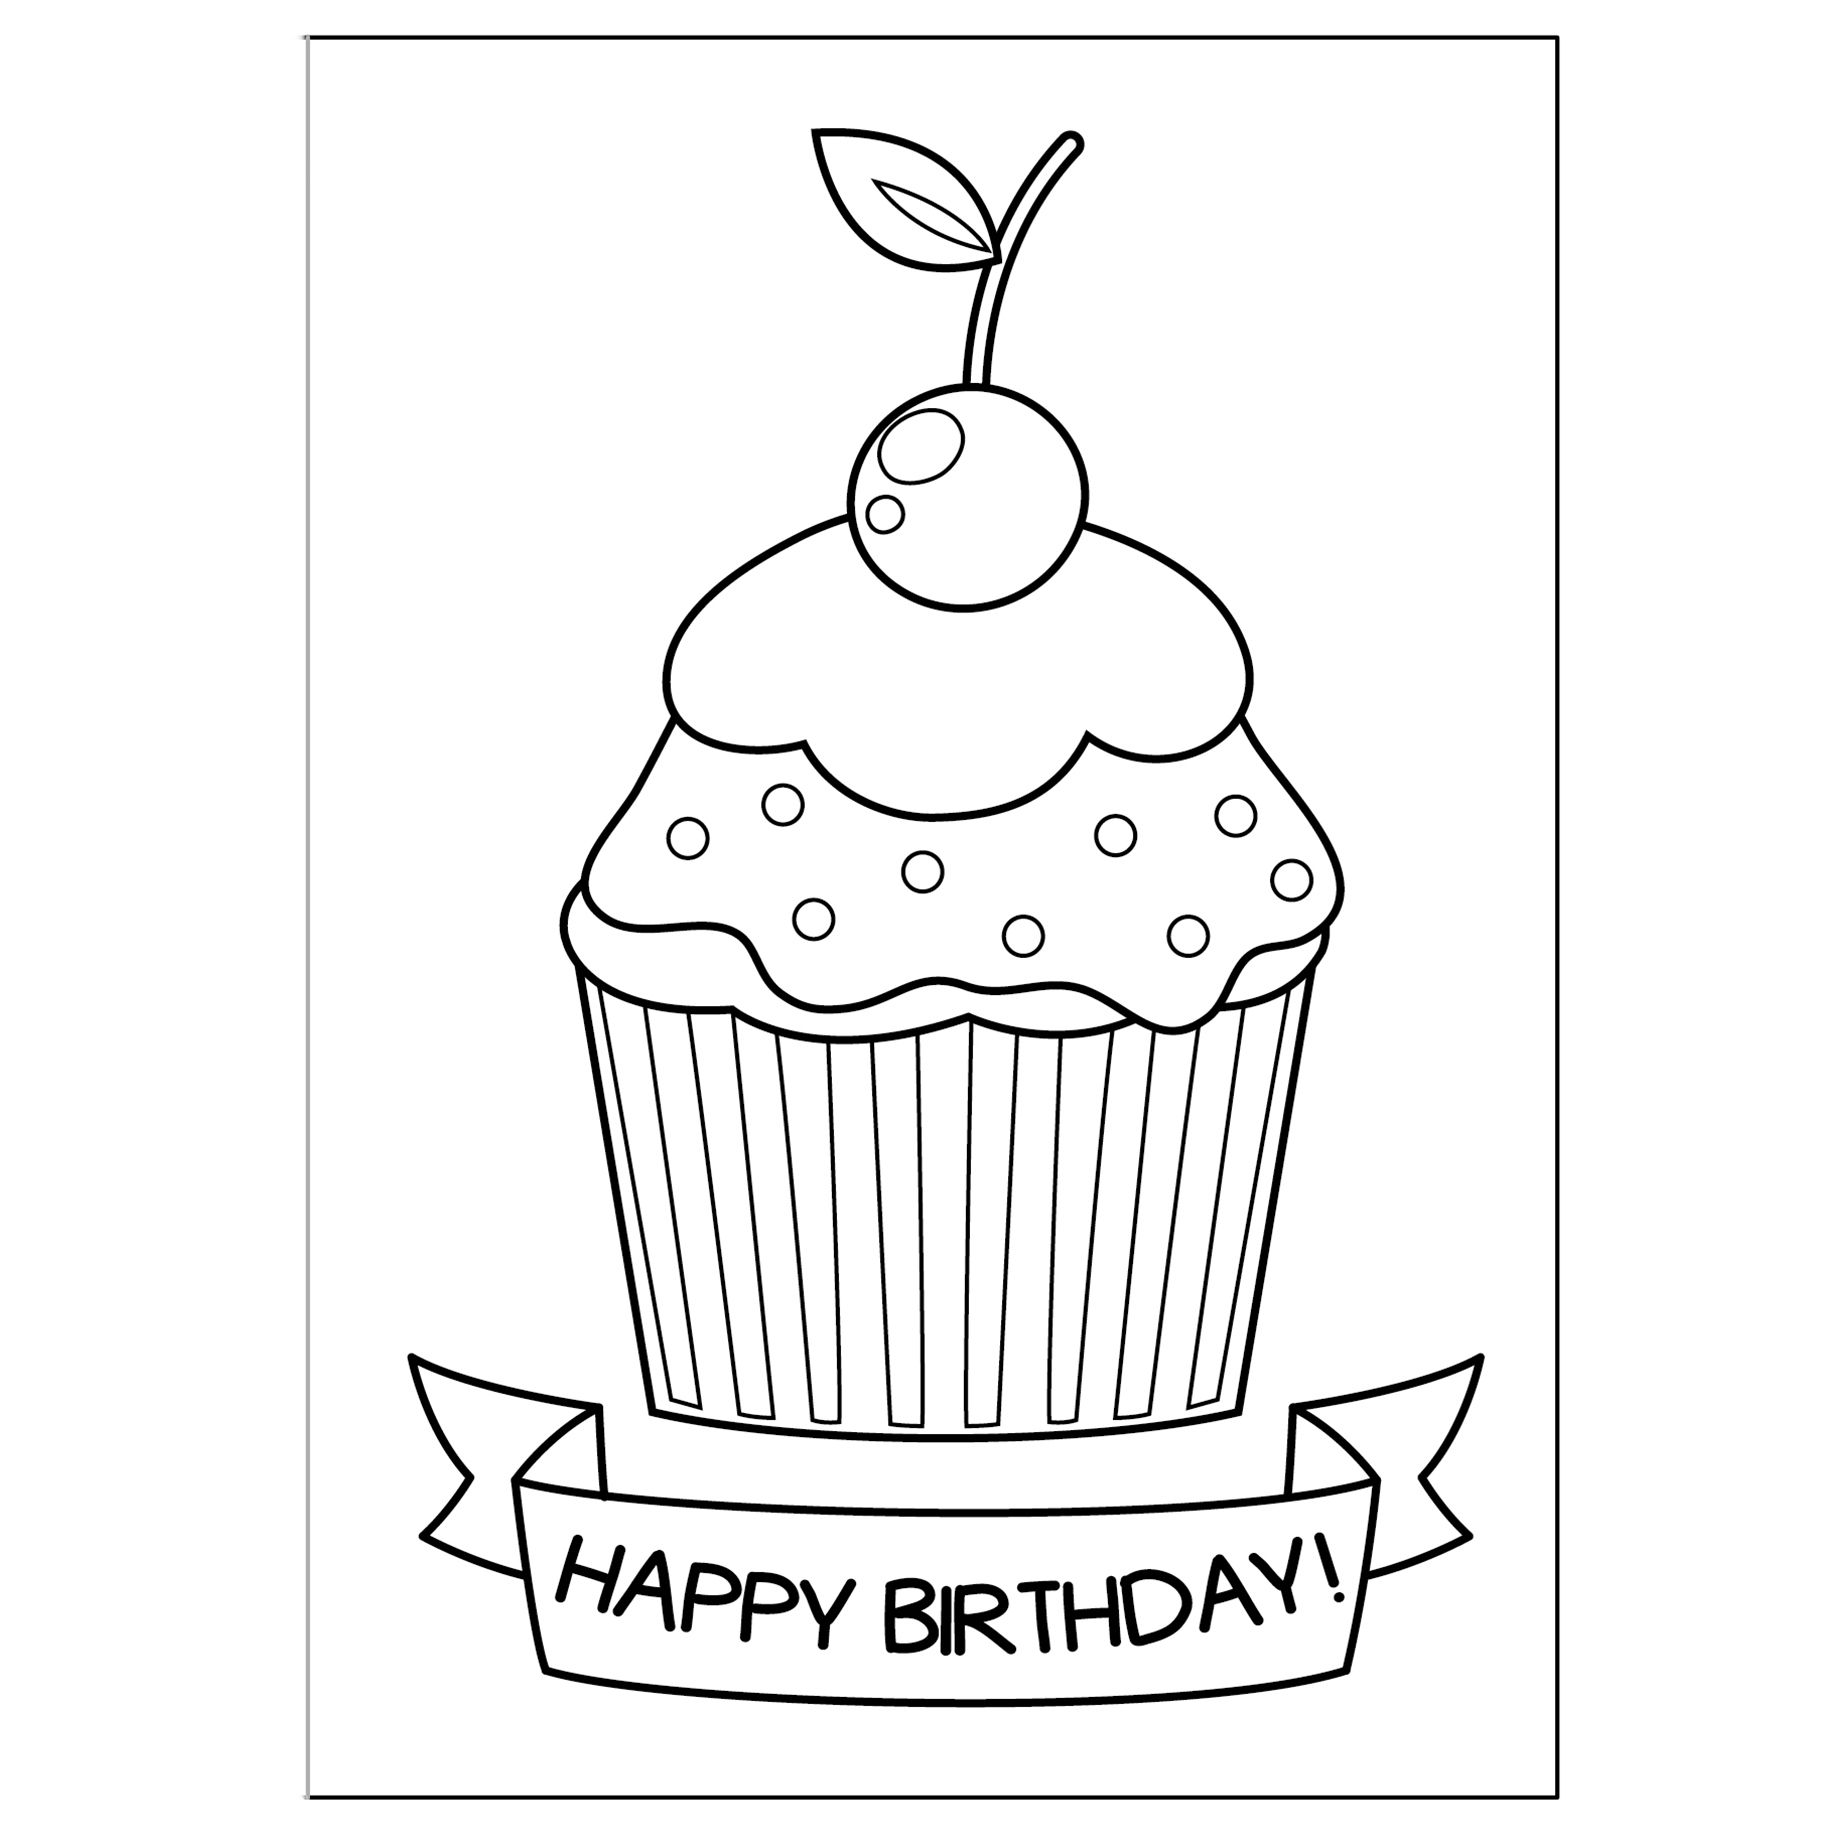 25 Free Printable Happy Birthday Coloring Pages | 1836x1836